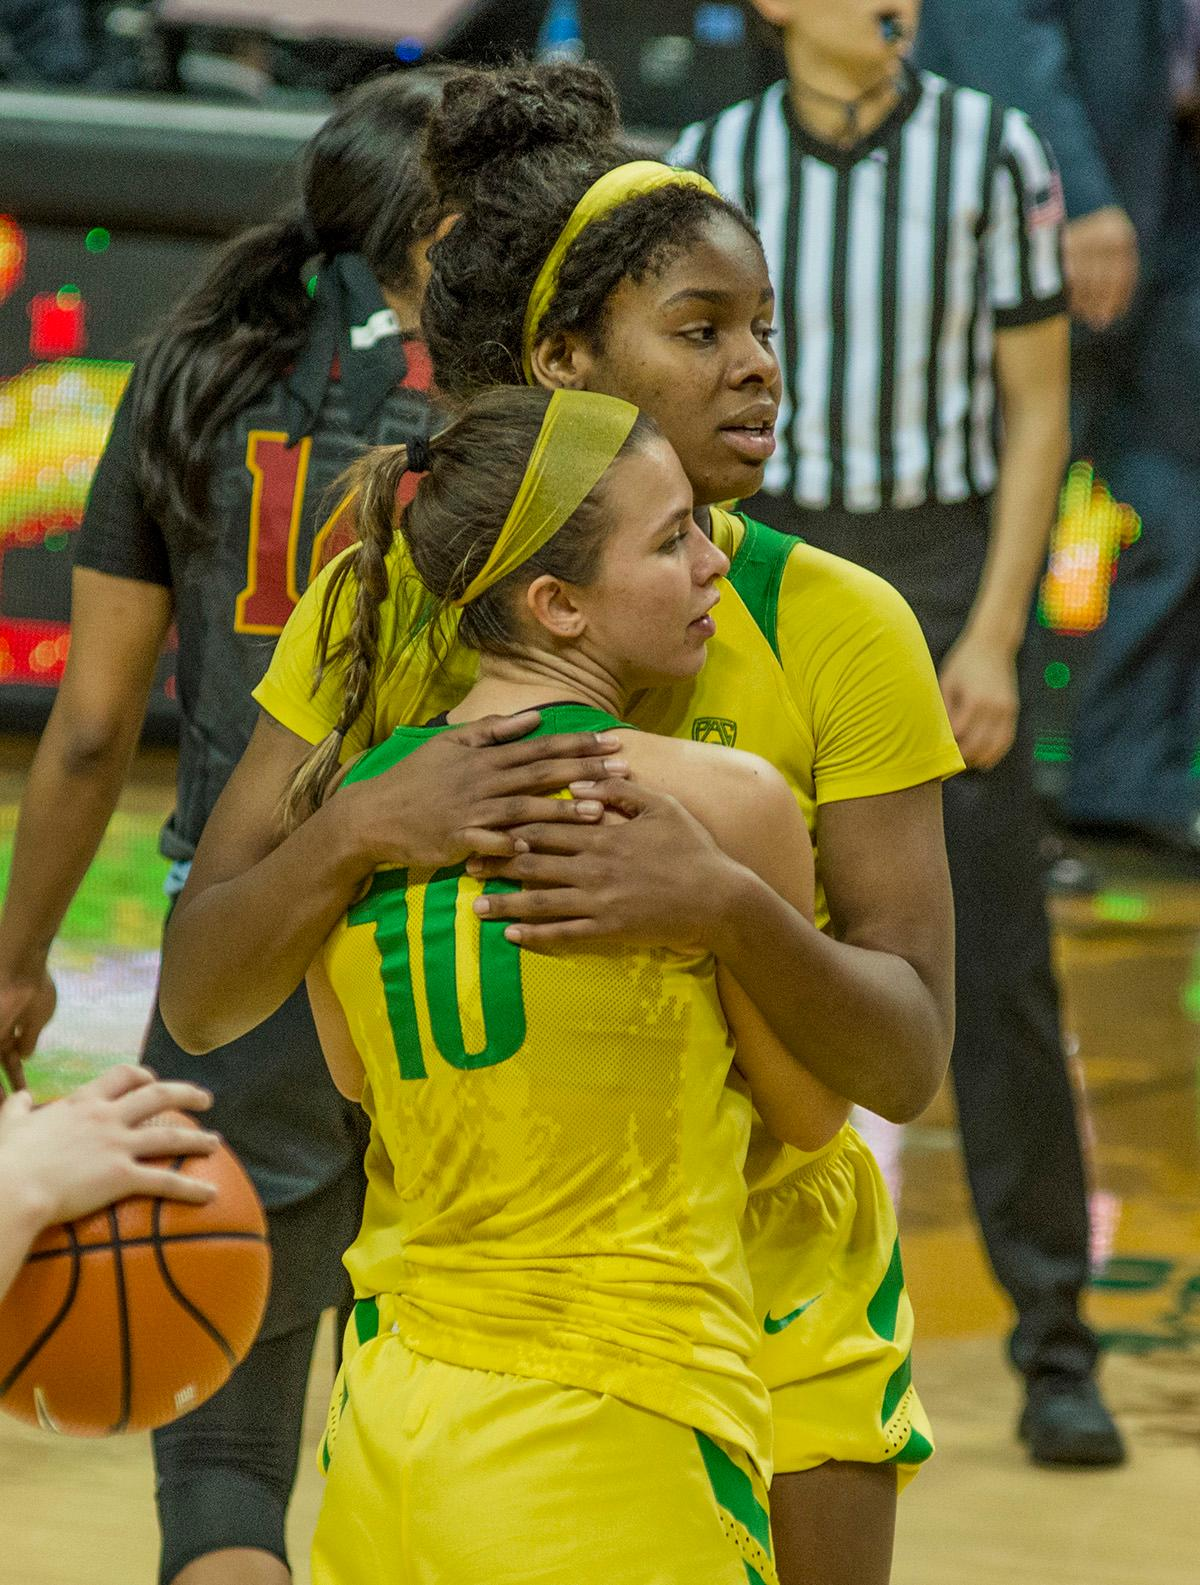 Oregon Ducks Lexi Bando (#10) and Ruthy Hebard (#24, rear) congratulate each other over their victory over the USC Trojans. The Oregon Ducks defeated the USC Trojans 80-74 on Friday at Matthew Knight Arena in a game that went into double overtime. Lexi Bando sealed the Ducks' victory by scoring a three-pointer in the closing of the game. Ruthy Hebard set a new NCAA record of 30 consecutive field goals over three games, the old record being 28. Ruthy Hebard got a double-double with 27 points and 10 rebounds, Mallory McGwire also had 10 rebounds. The Ducks had four players in double digits: Ruthy Hebard with 27; Maite Cazorla with 17; Sabrina Ionescu with 15; and Lexi Bando with 11. The Ducks are now 24-4, 13-2 in the Pac-12, and are tied for first with Stanford. Photo by Dan Morrison, Oregon News Lab